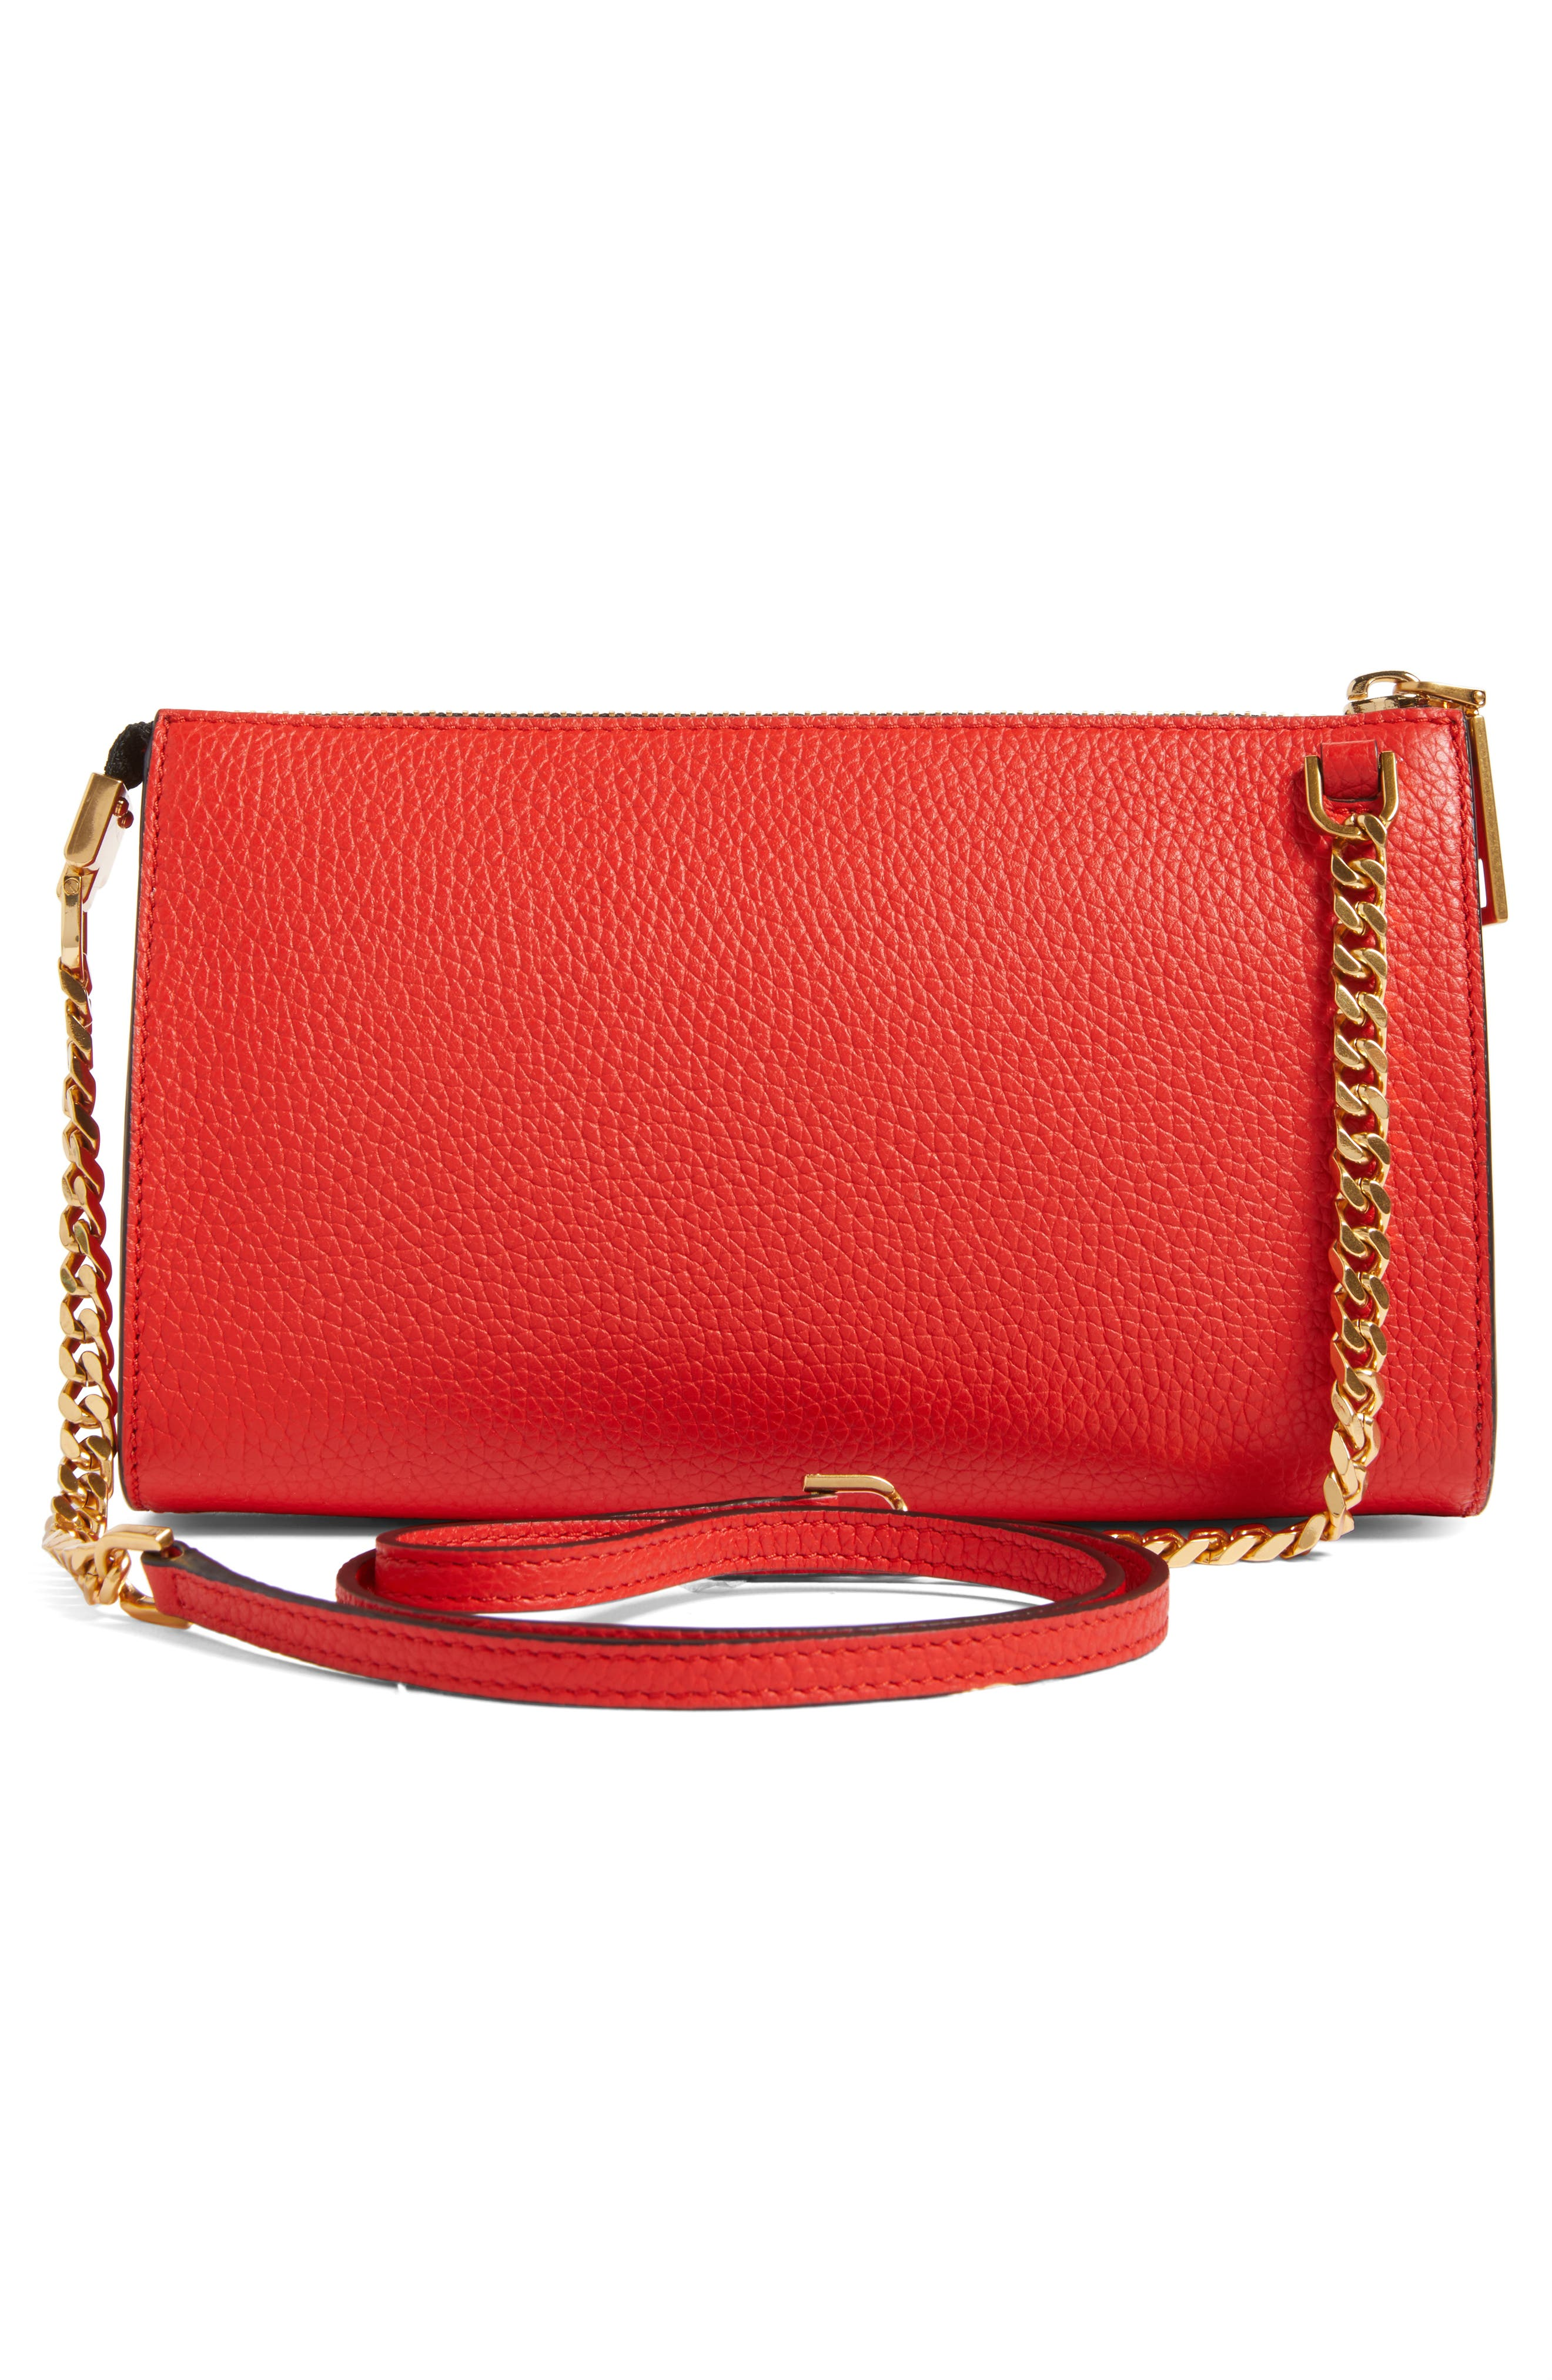 Alternate Image 3  - MARC JACOBS Small Gotham Leather Crossbody Wallet (Nordstrom Exclusive)